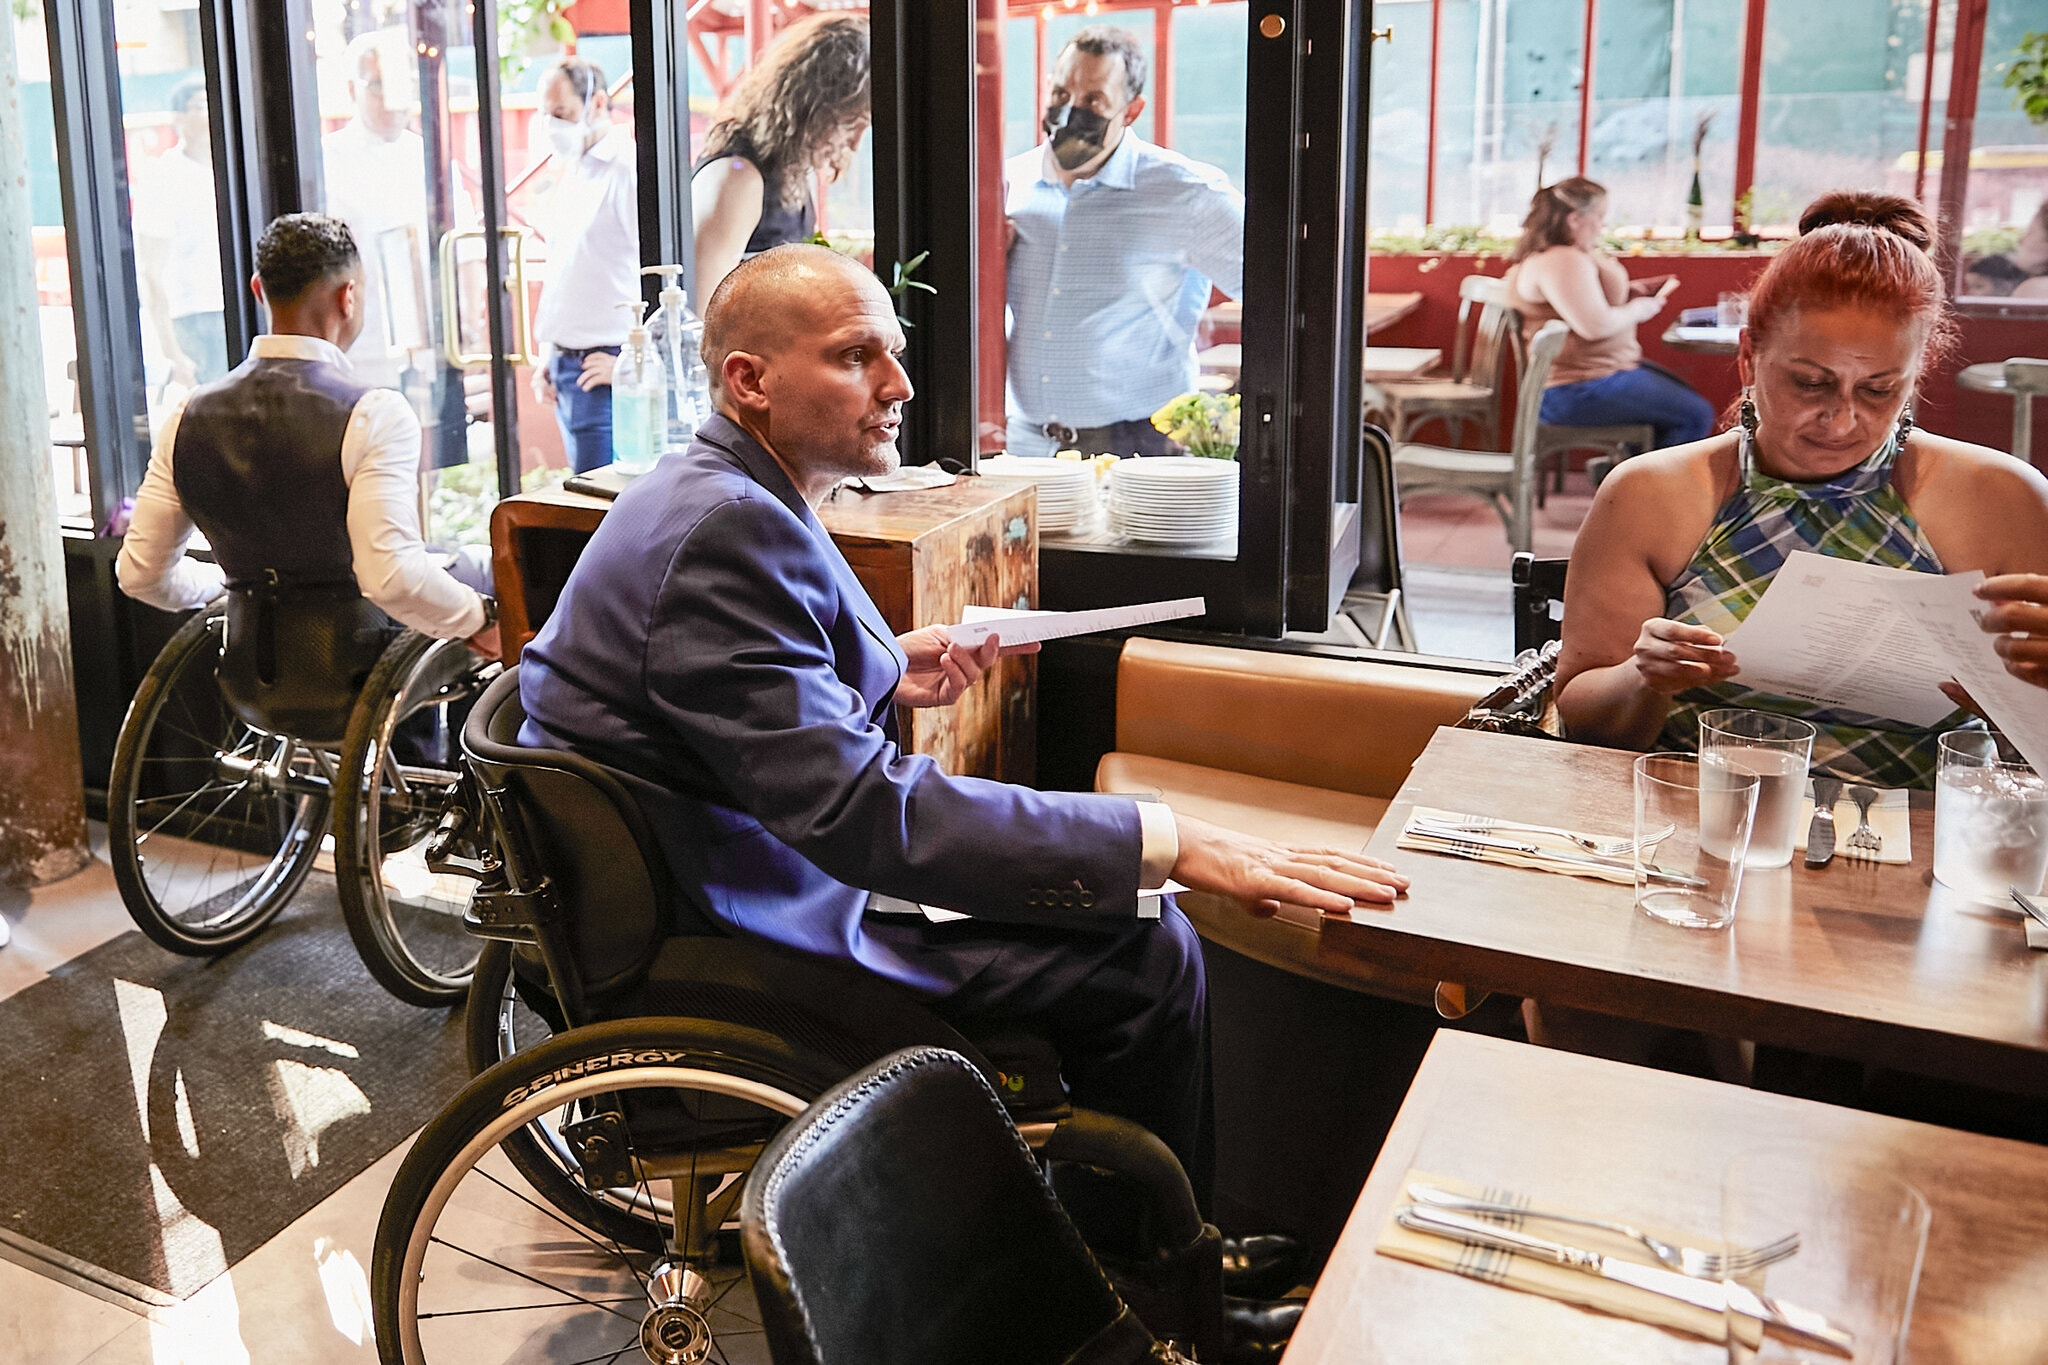 A man in a suit sits in a wheelchair while holding a menu at the front of a restaurant table. Image.